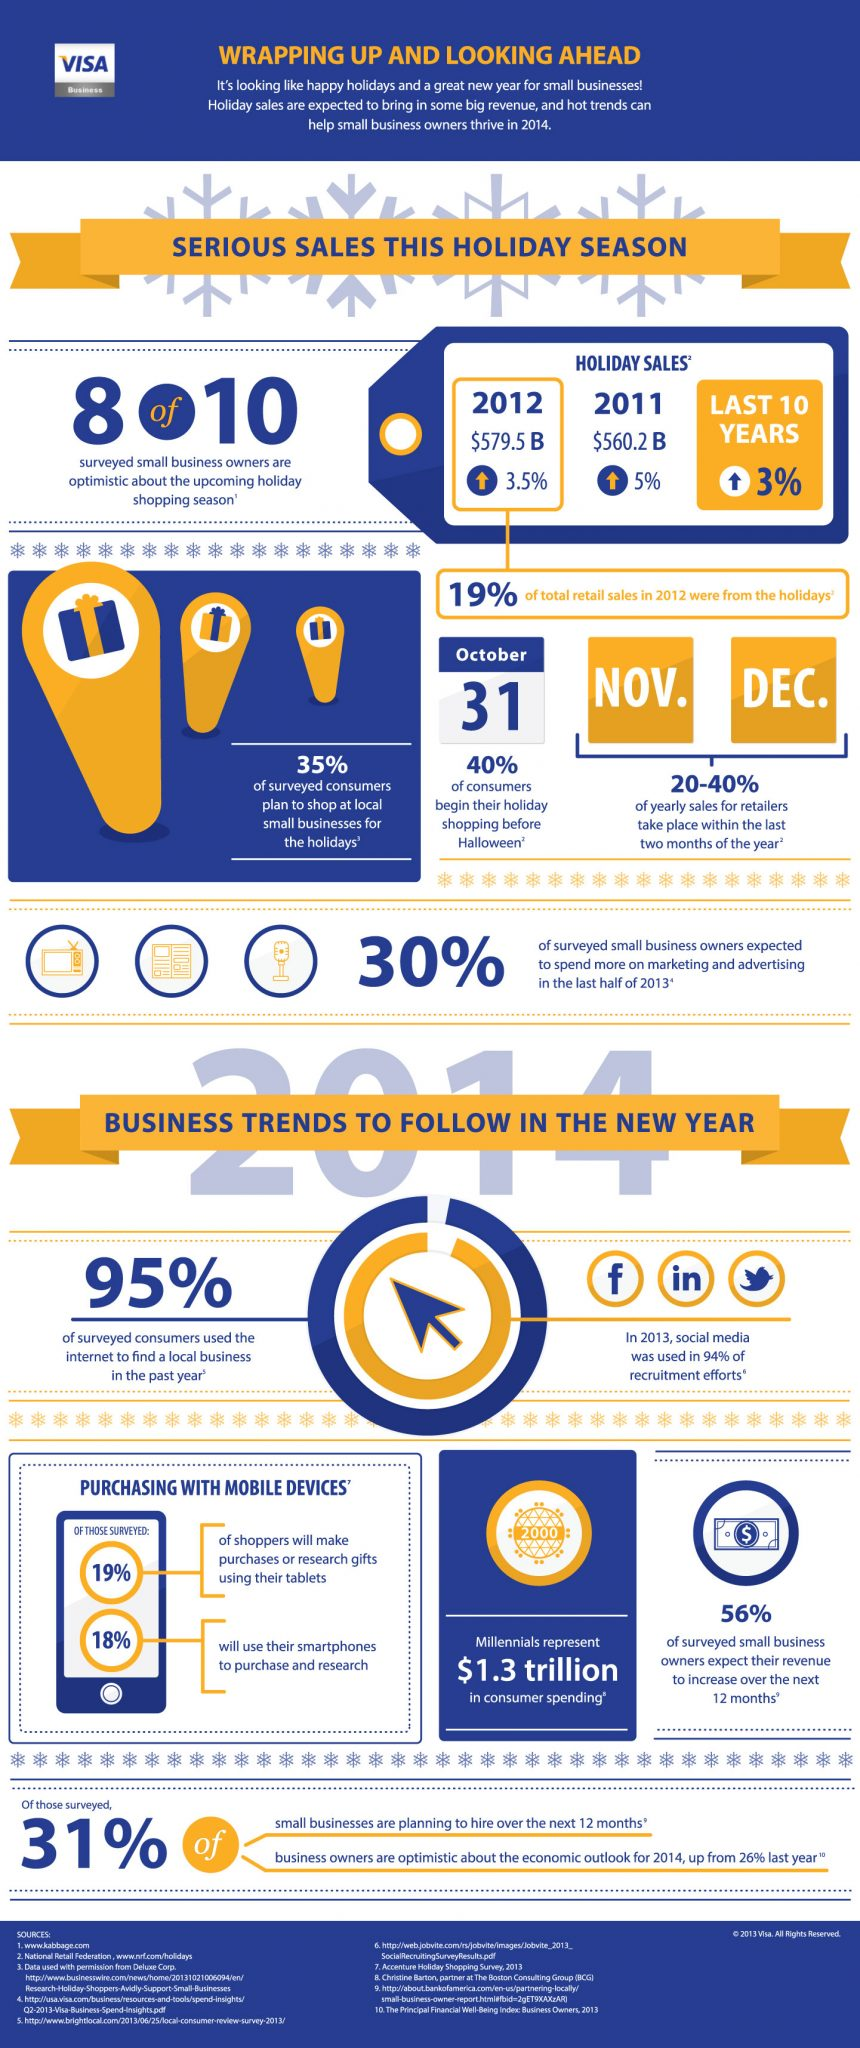 Infographic research and design by Visa Business.